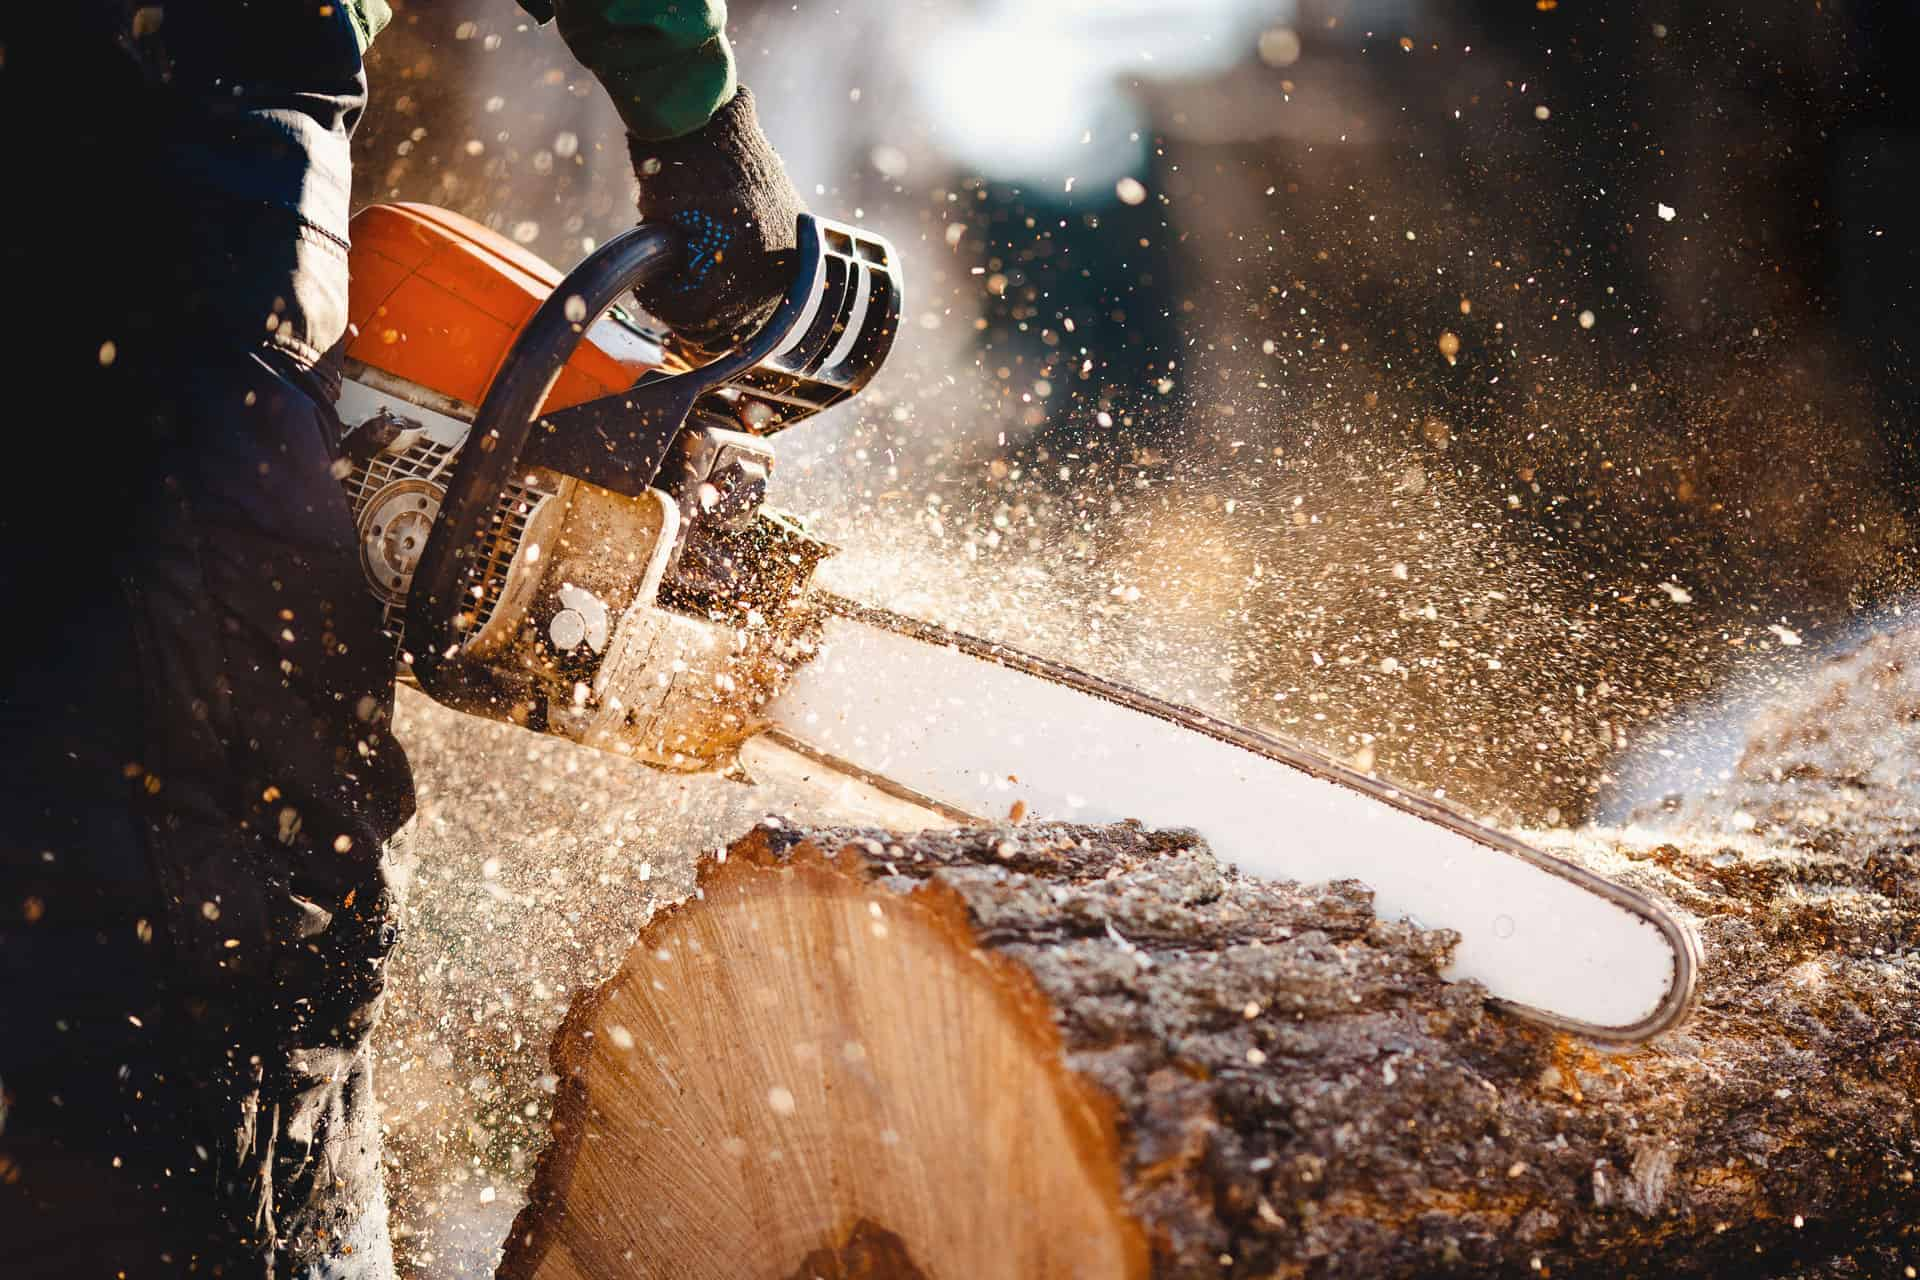 chopping into a log using a chainsaw